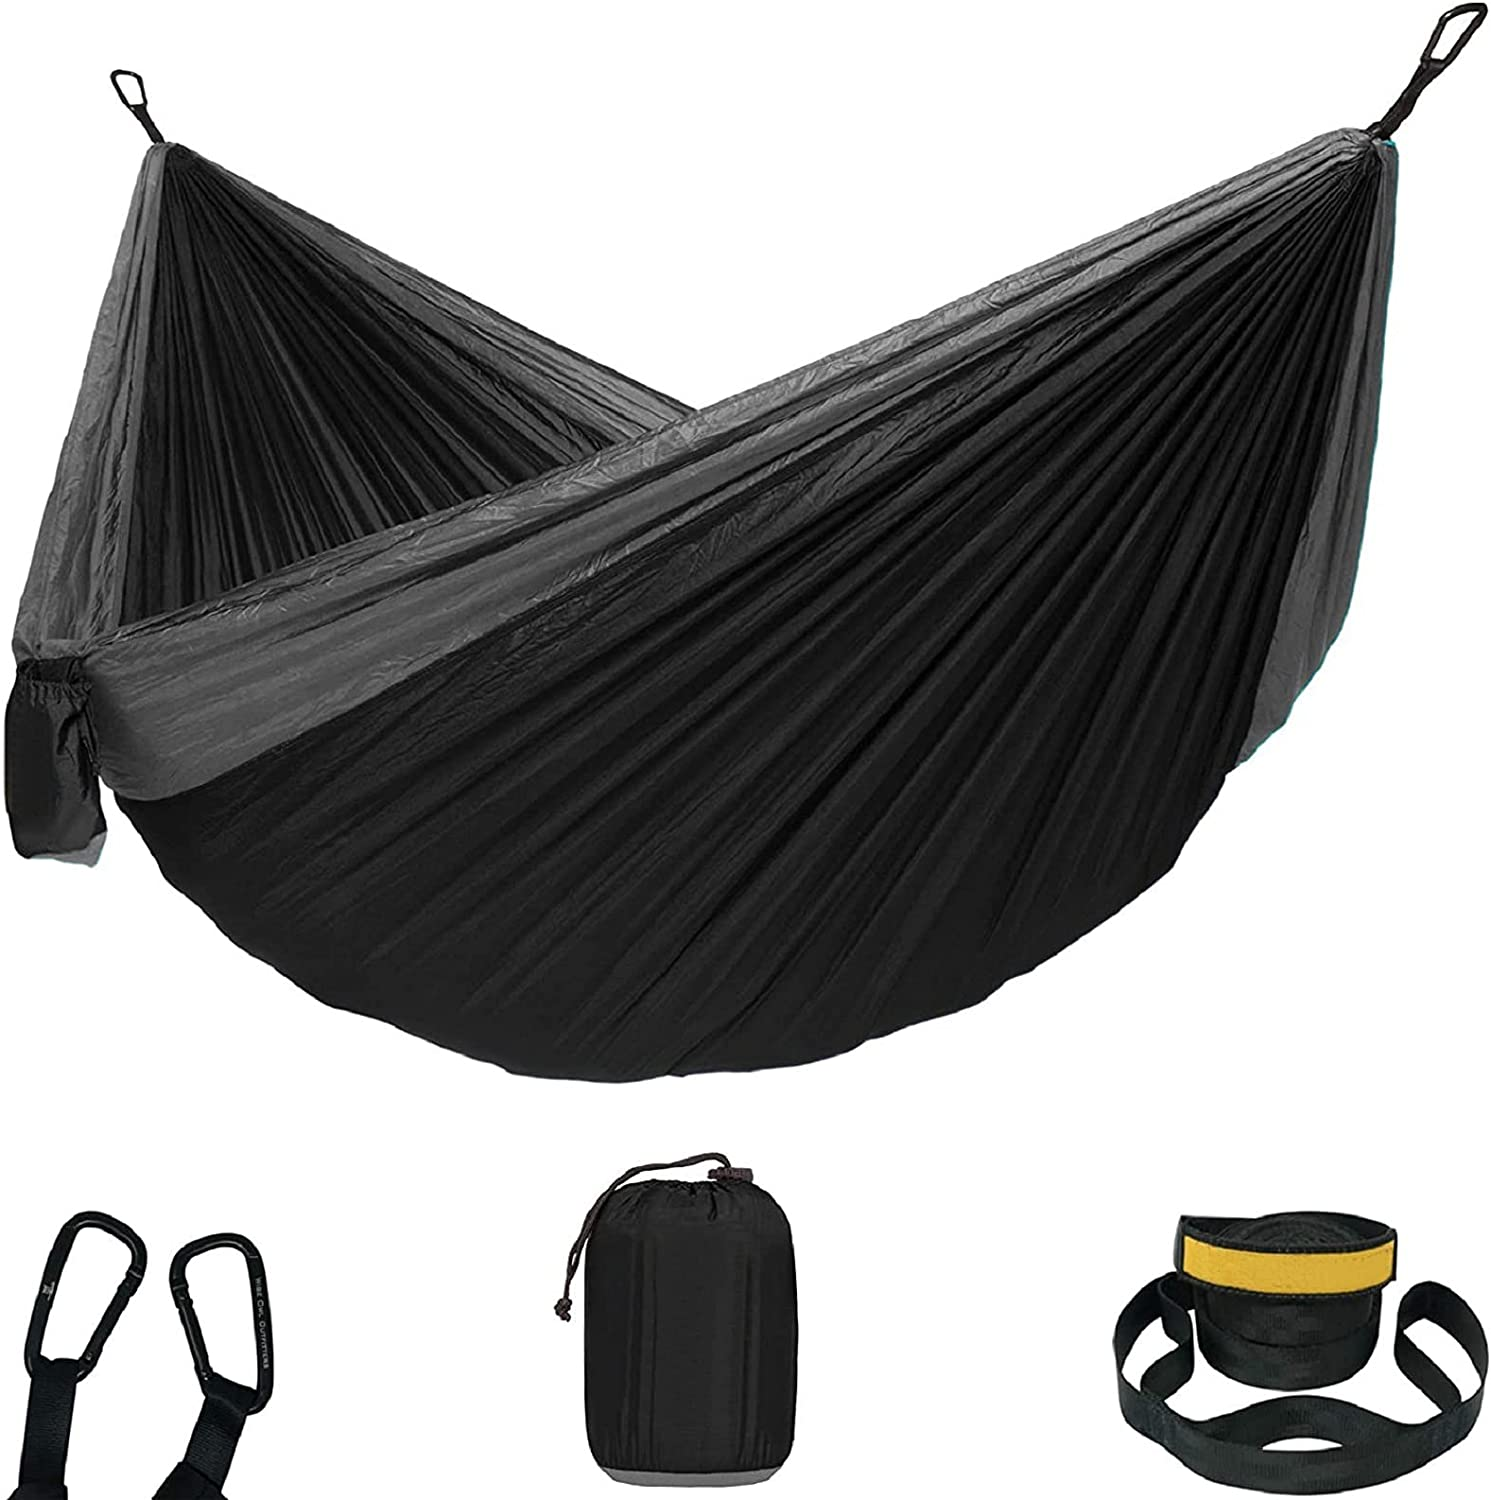 Challenge the lowest price Tramile Hammock Camping Field trust Indoor